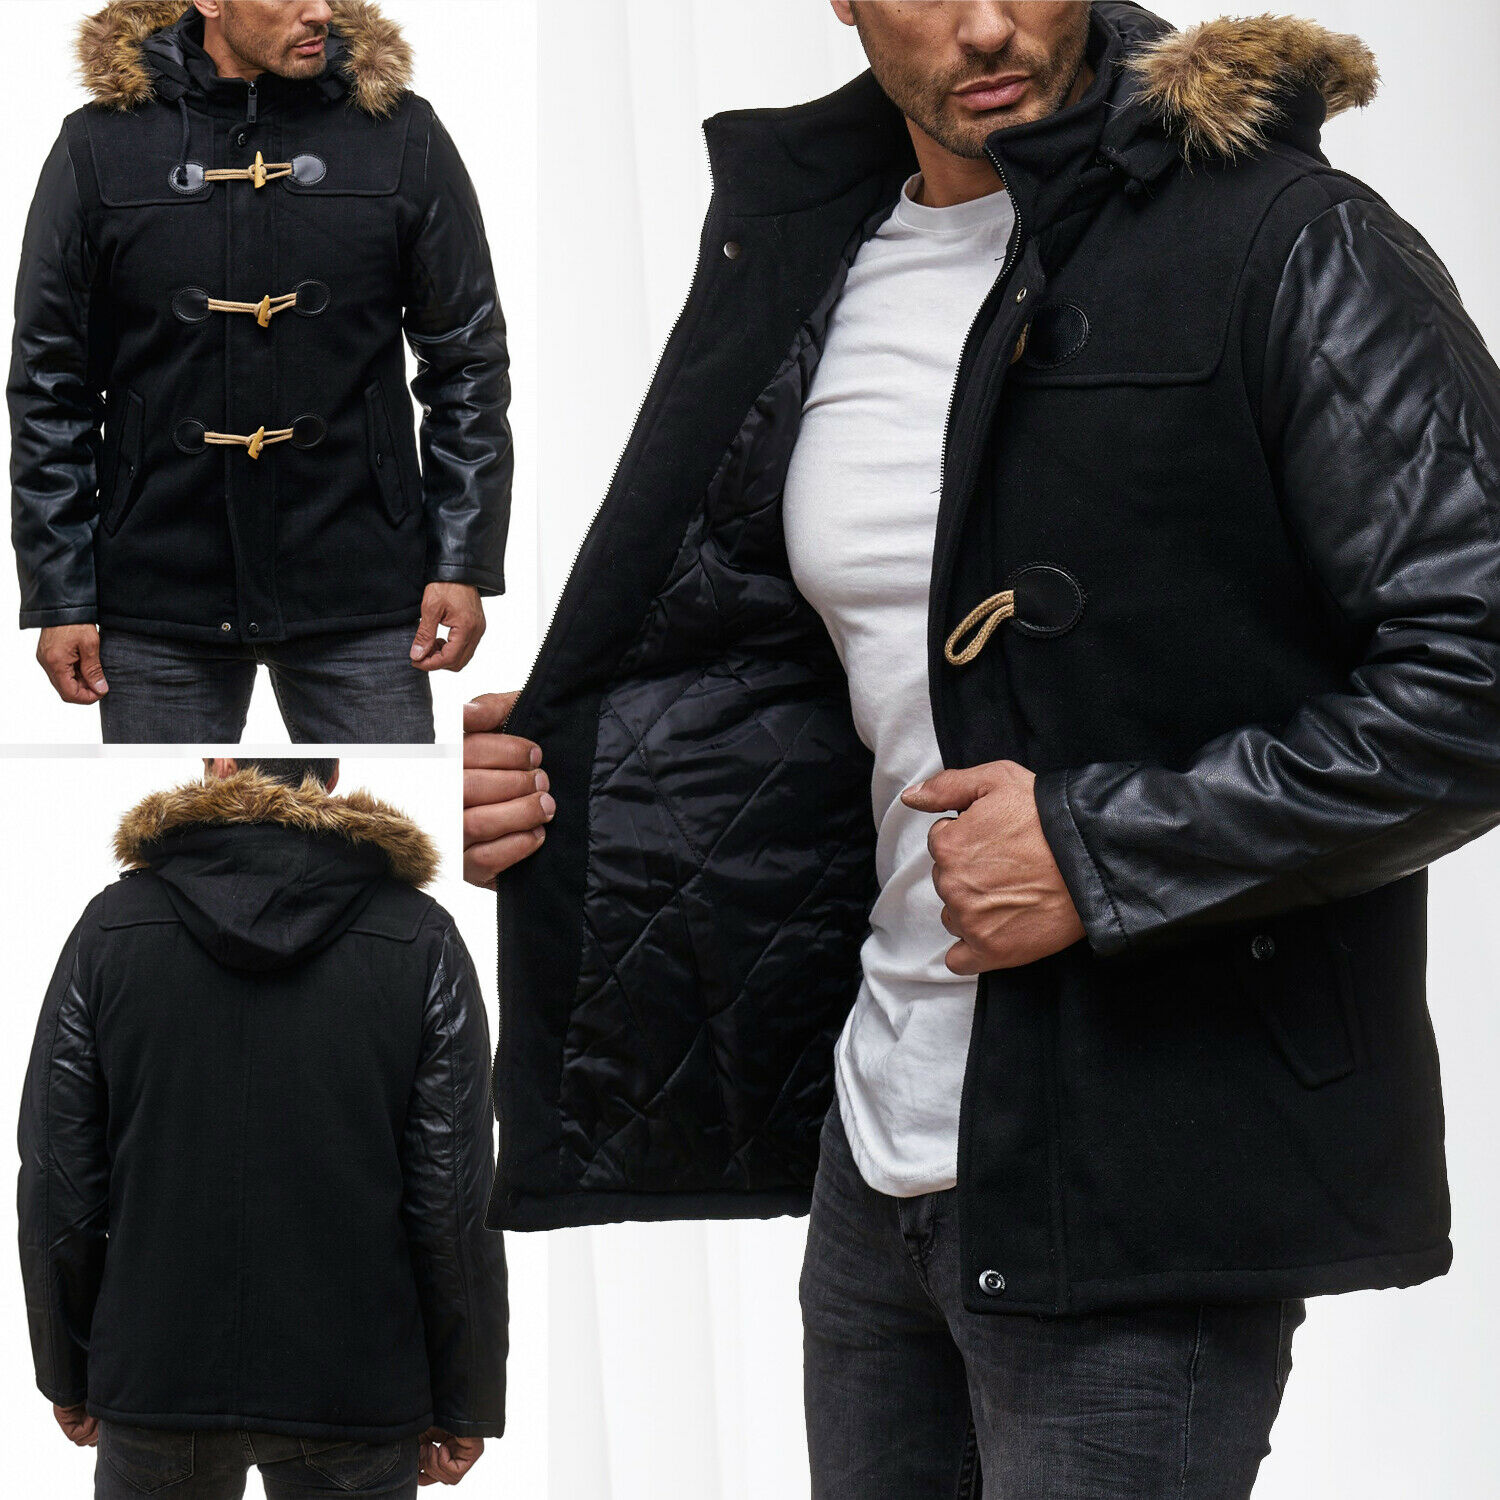 herren winterjacke parka mit fell kapuze jacke biker leder. Black Bedroom Furniture Sets. Home Design Ideas